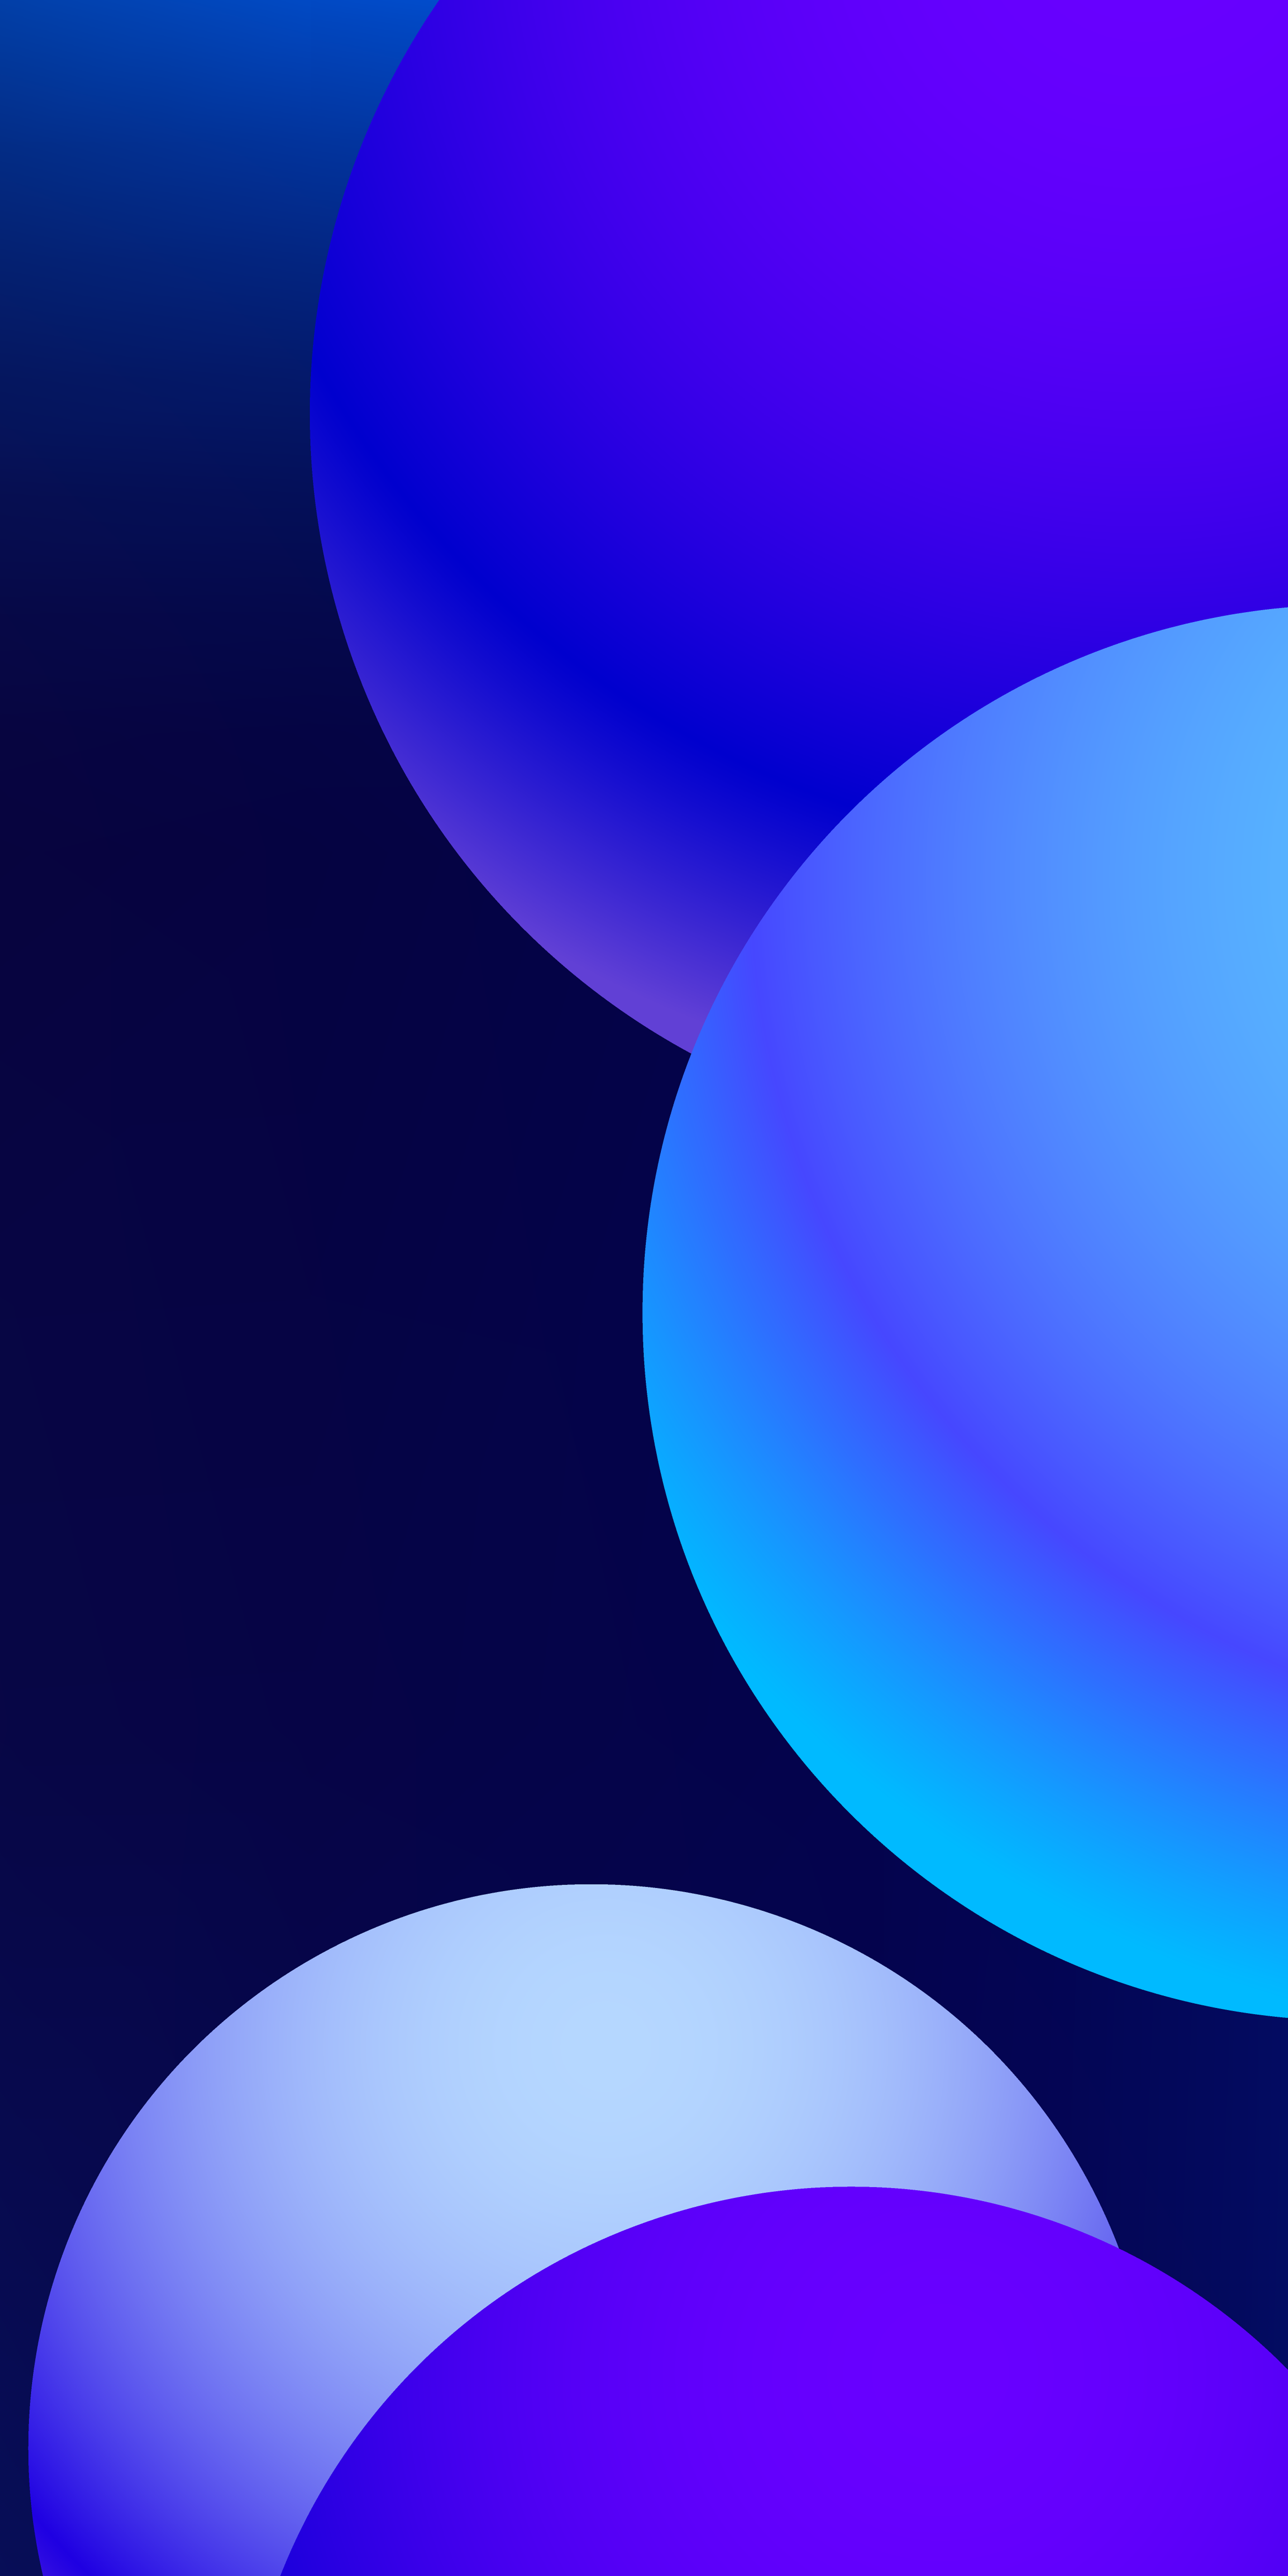 Blue Gradient circles by @Ongliong11 on Twitter